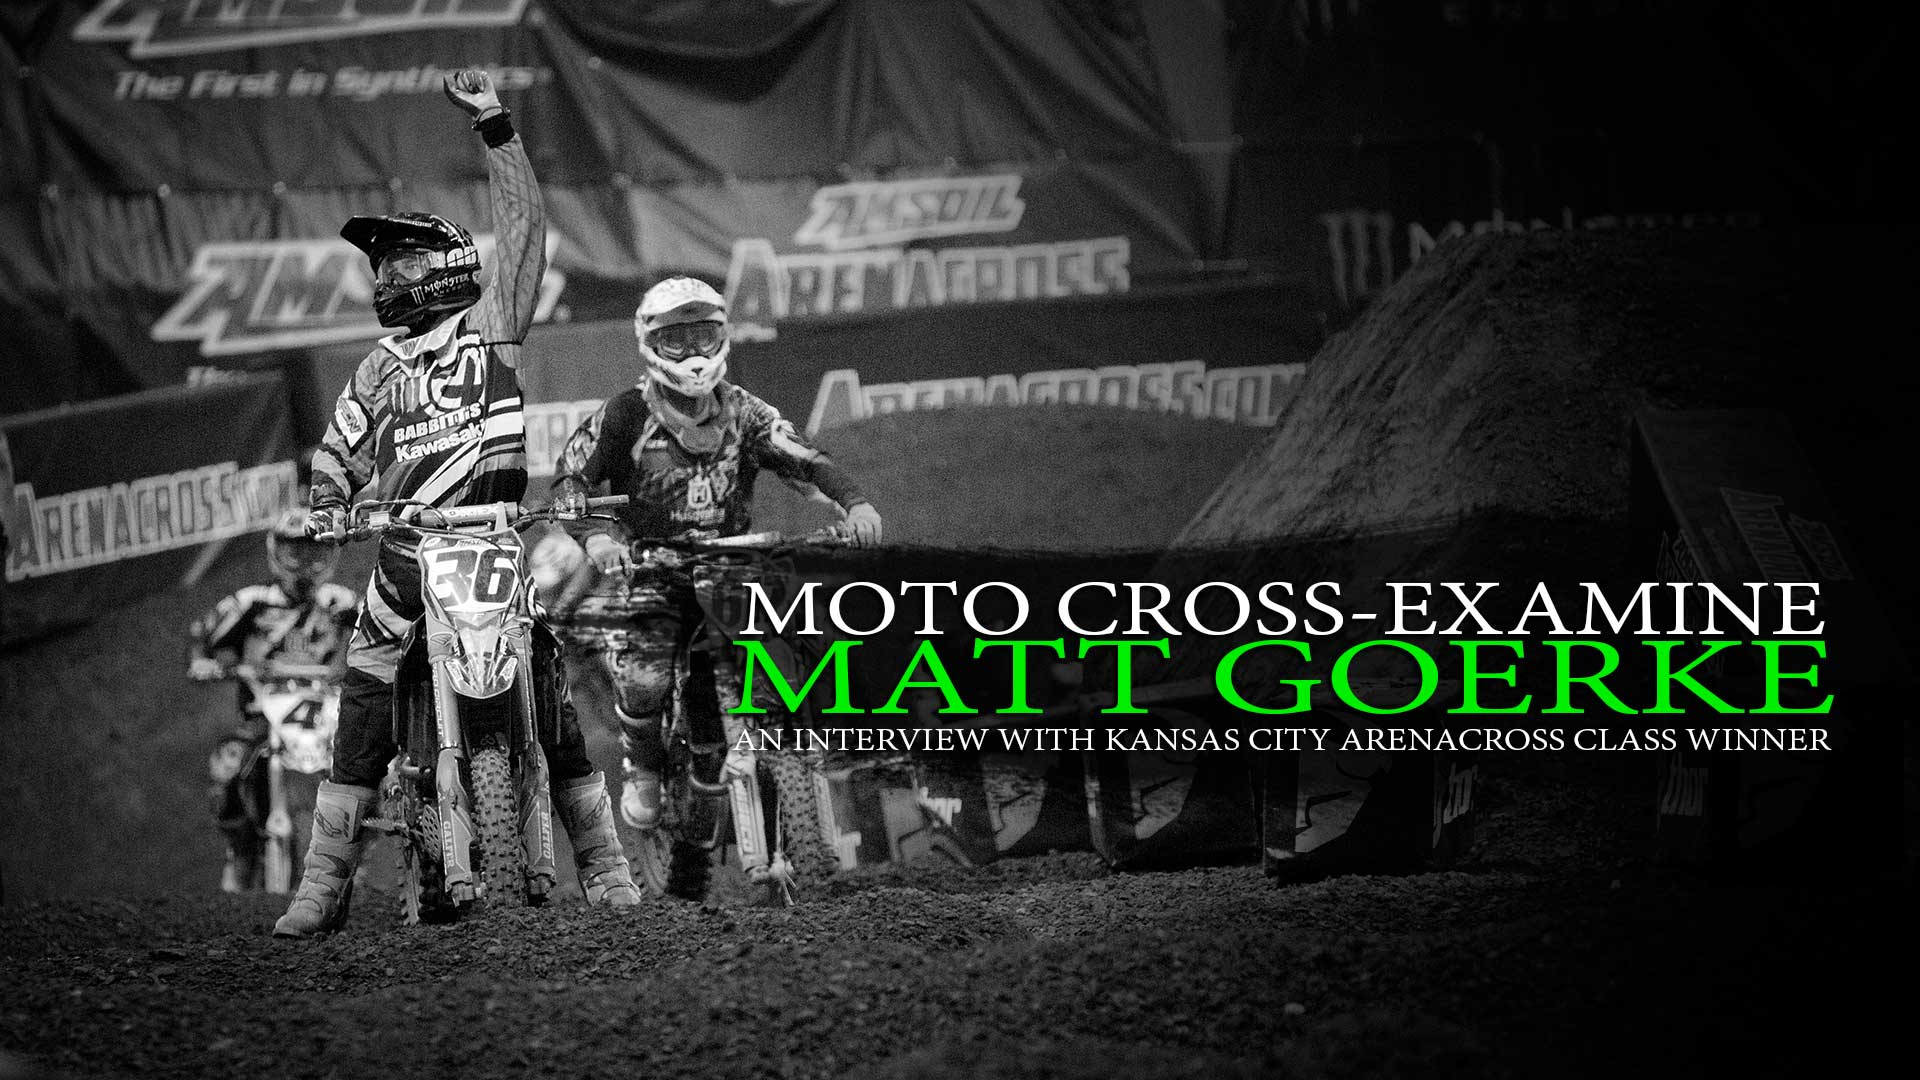 Moto Cross-Examine: Matt Goerke